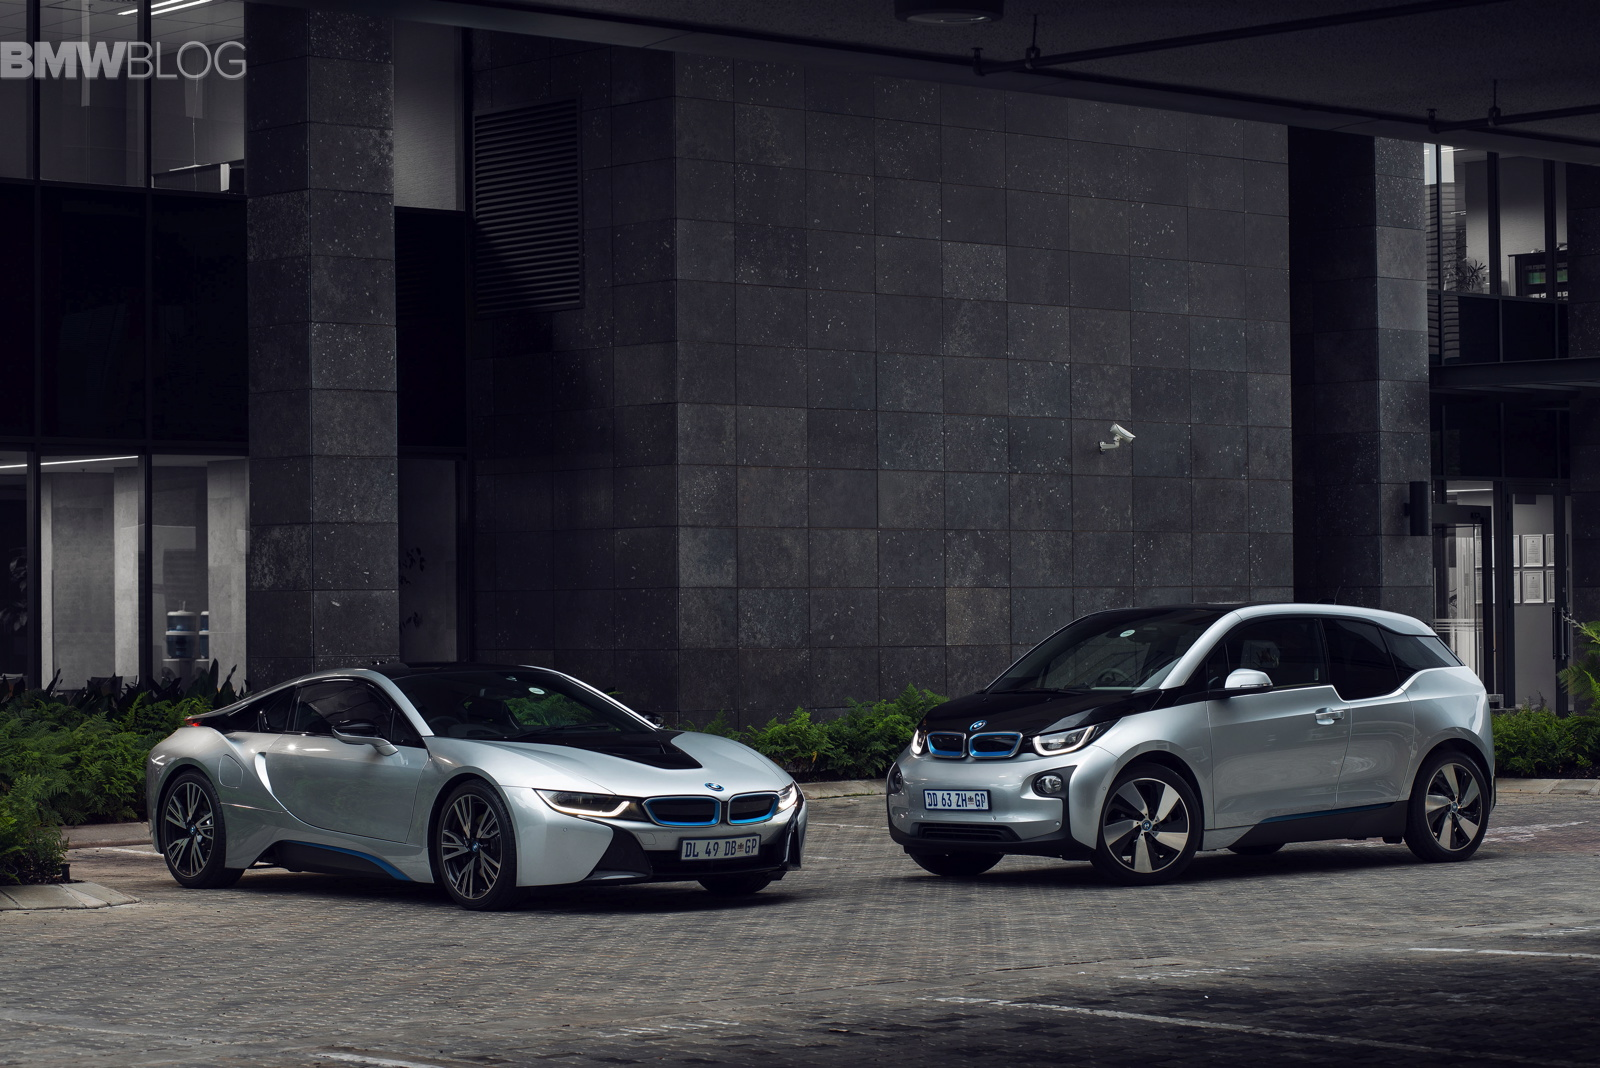 bmw i8 images south africa 59